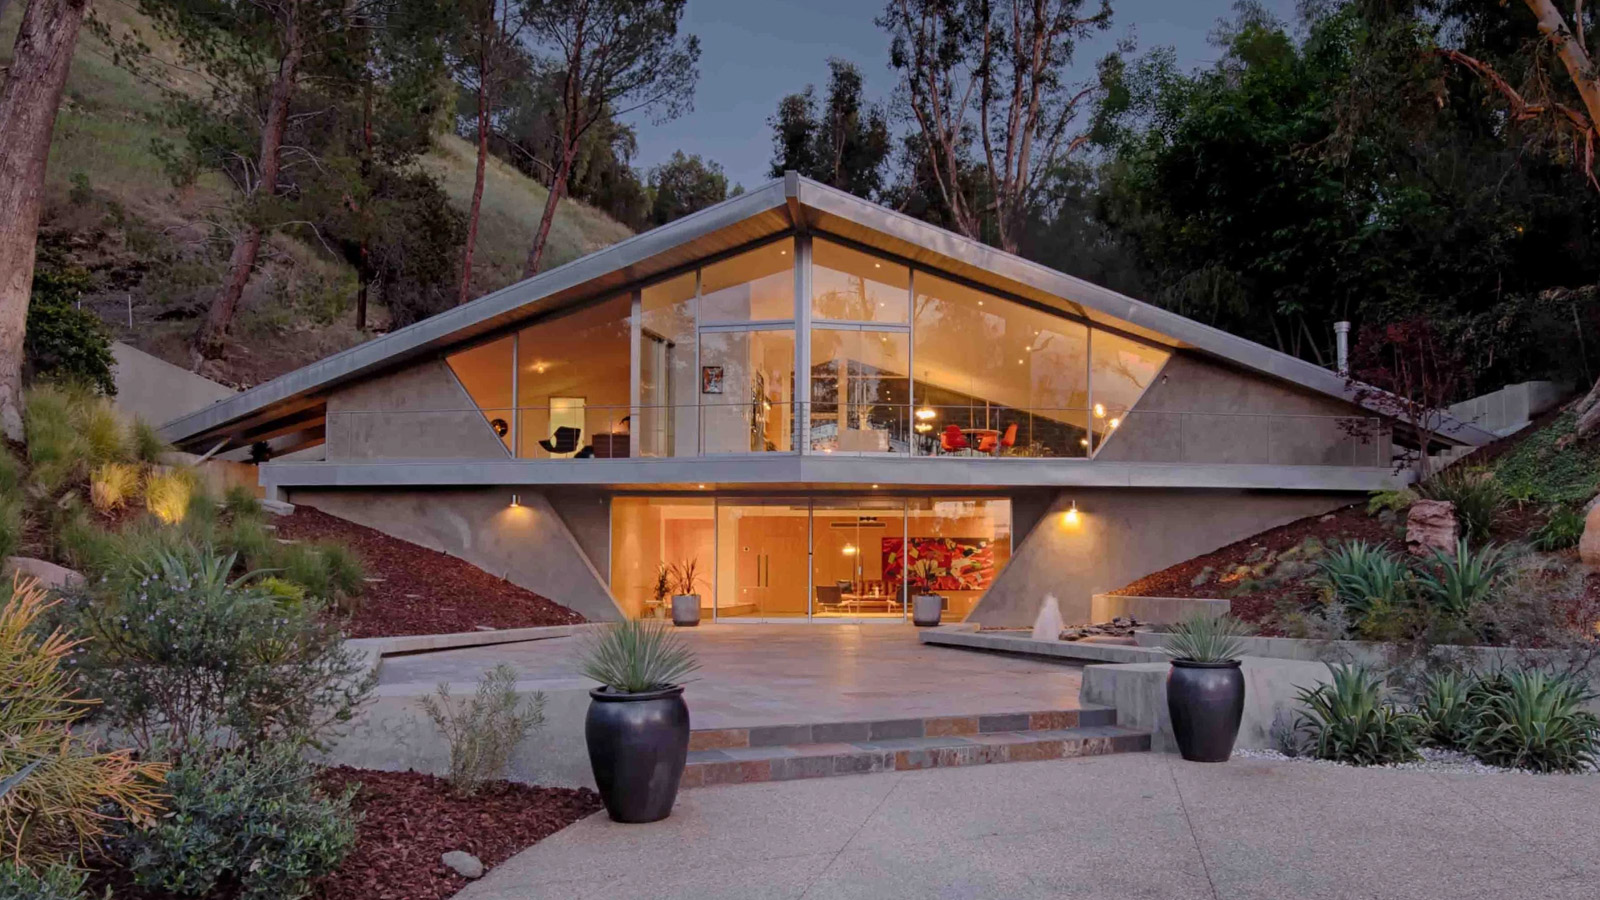 Triangle House by Harry Gesner